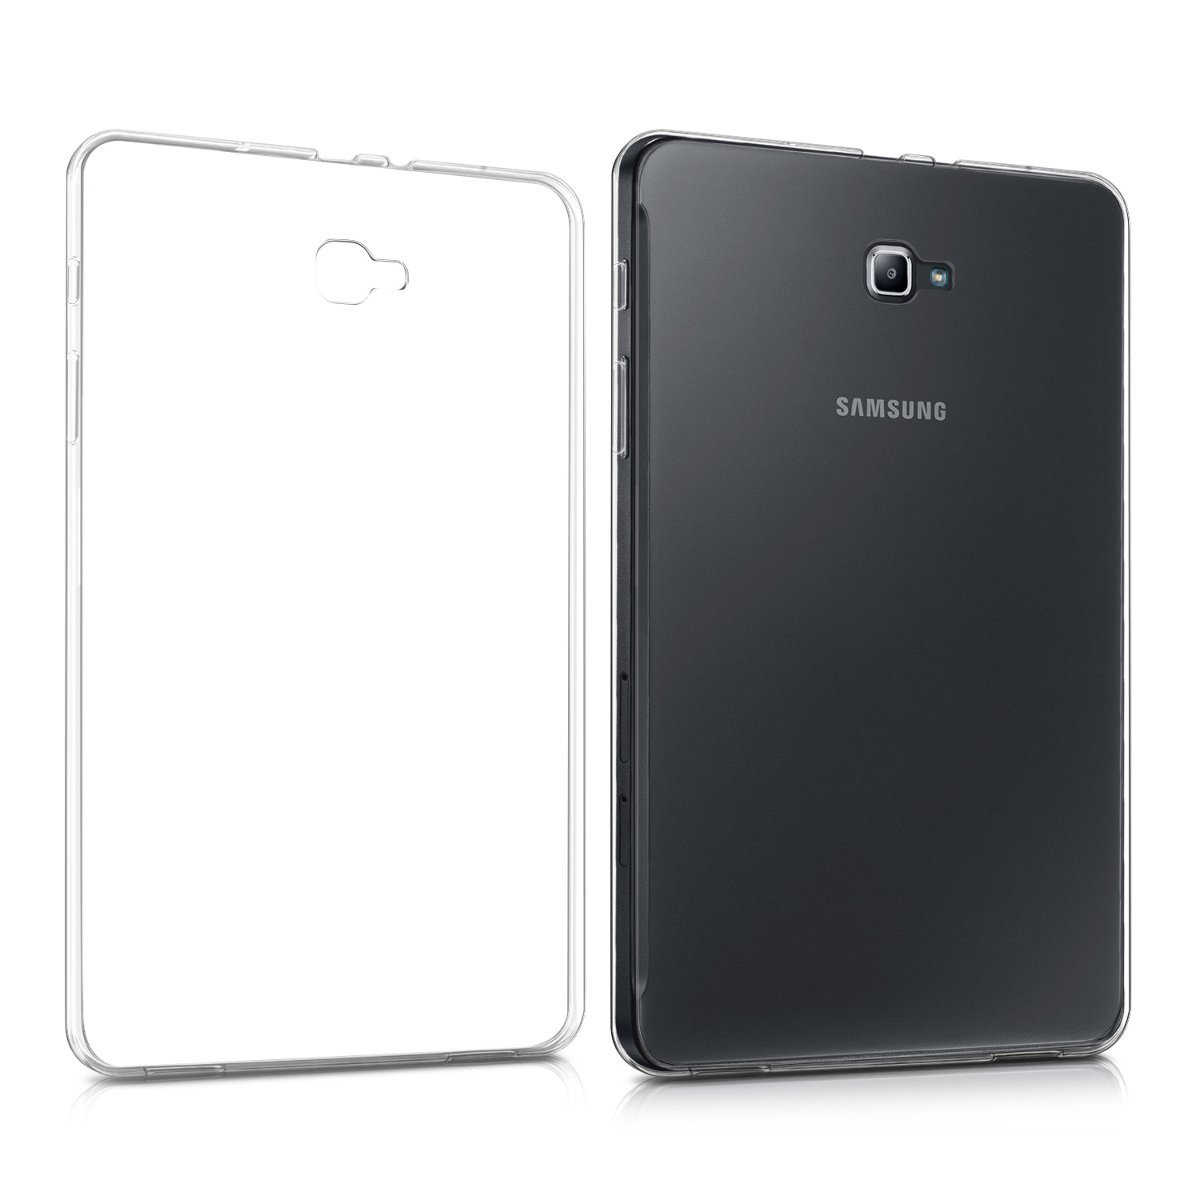 Clear Soft Silicon TPU Case for Samsung Galaxy Tab A 10.1 2016 T580 T585 SM-T580N TPU Gel Rubber Soft Protective Case Cover аксессуар чехол samsung galaxy tab a 7 sm t285 sm t280 it baggage мультистенд black itssgta74 1